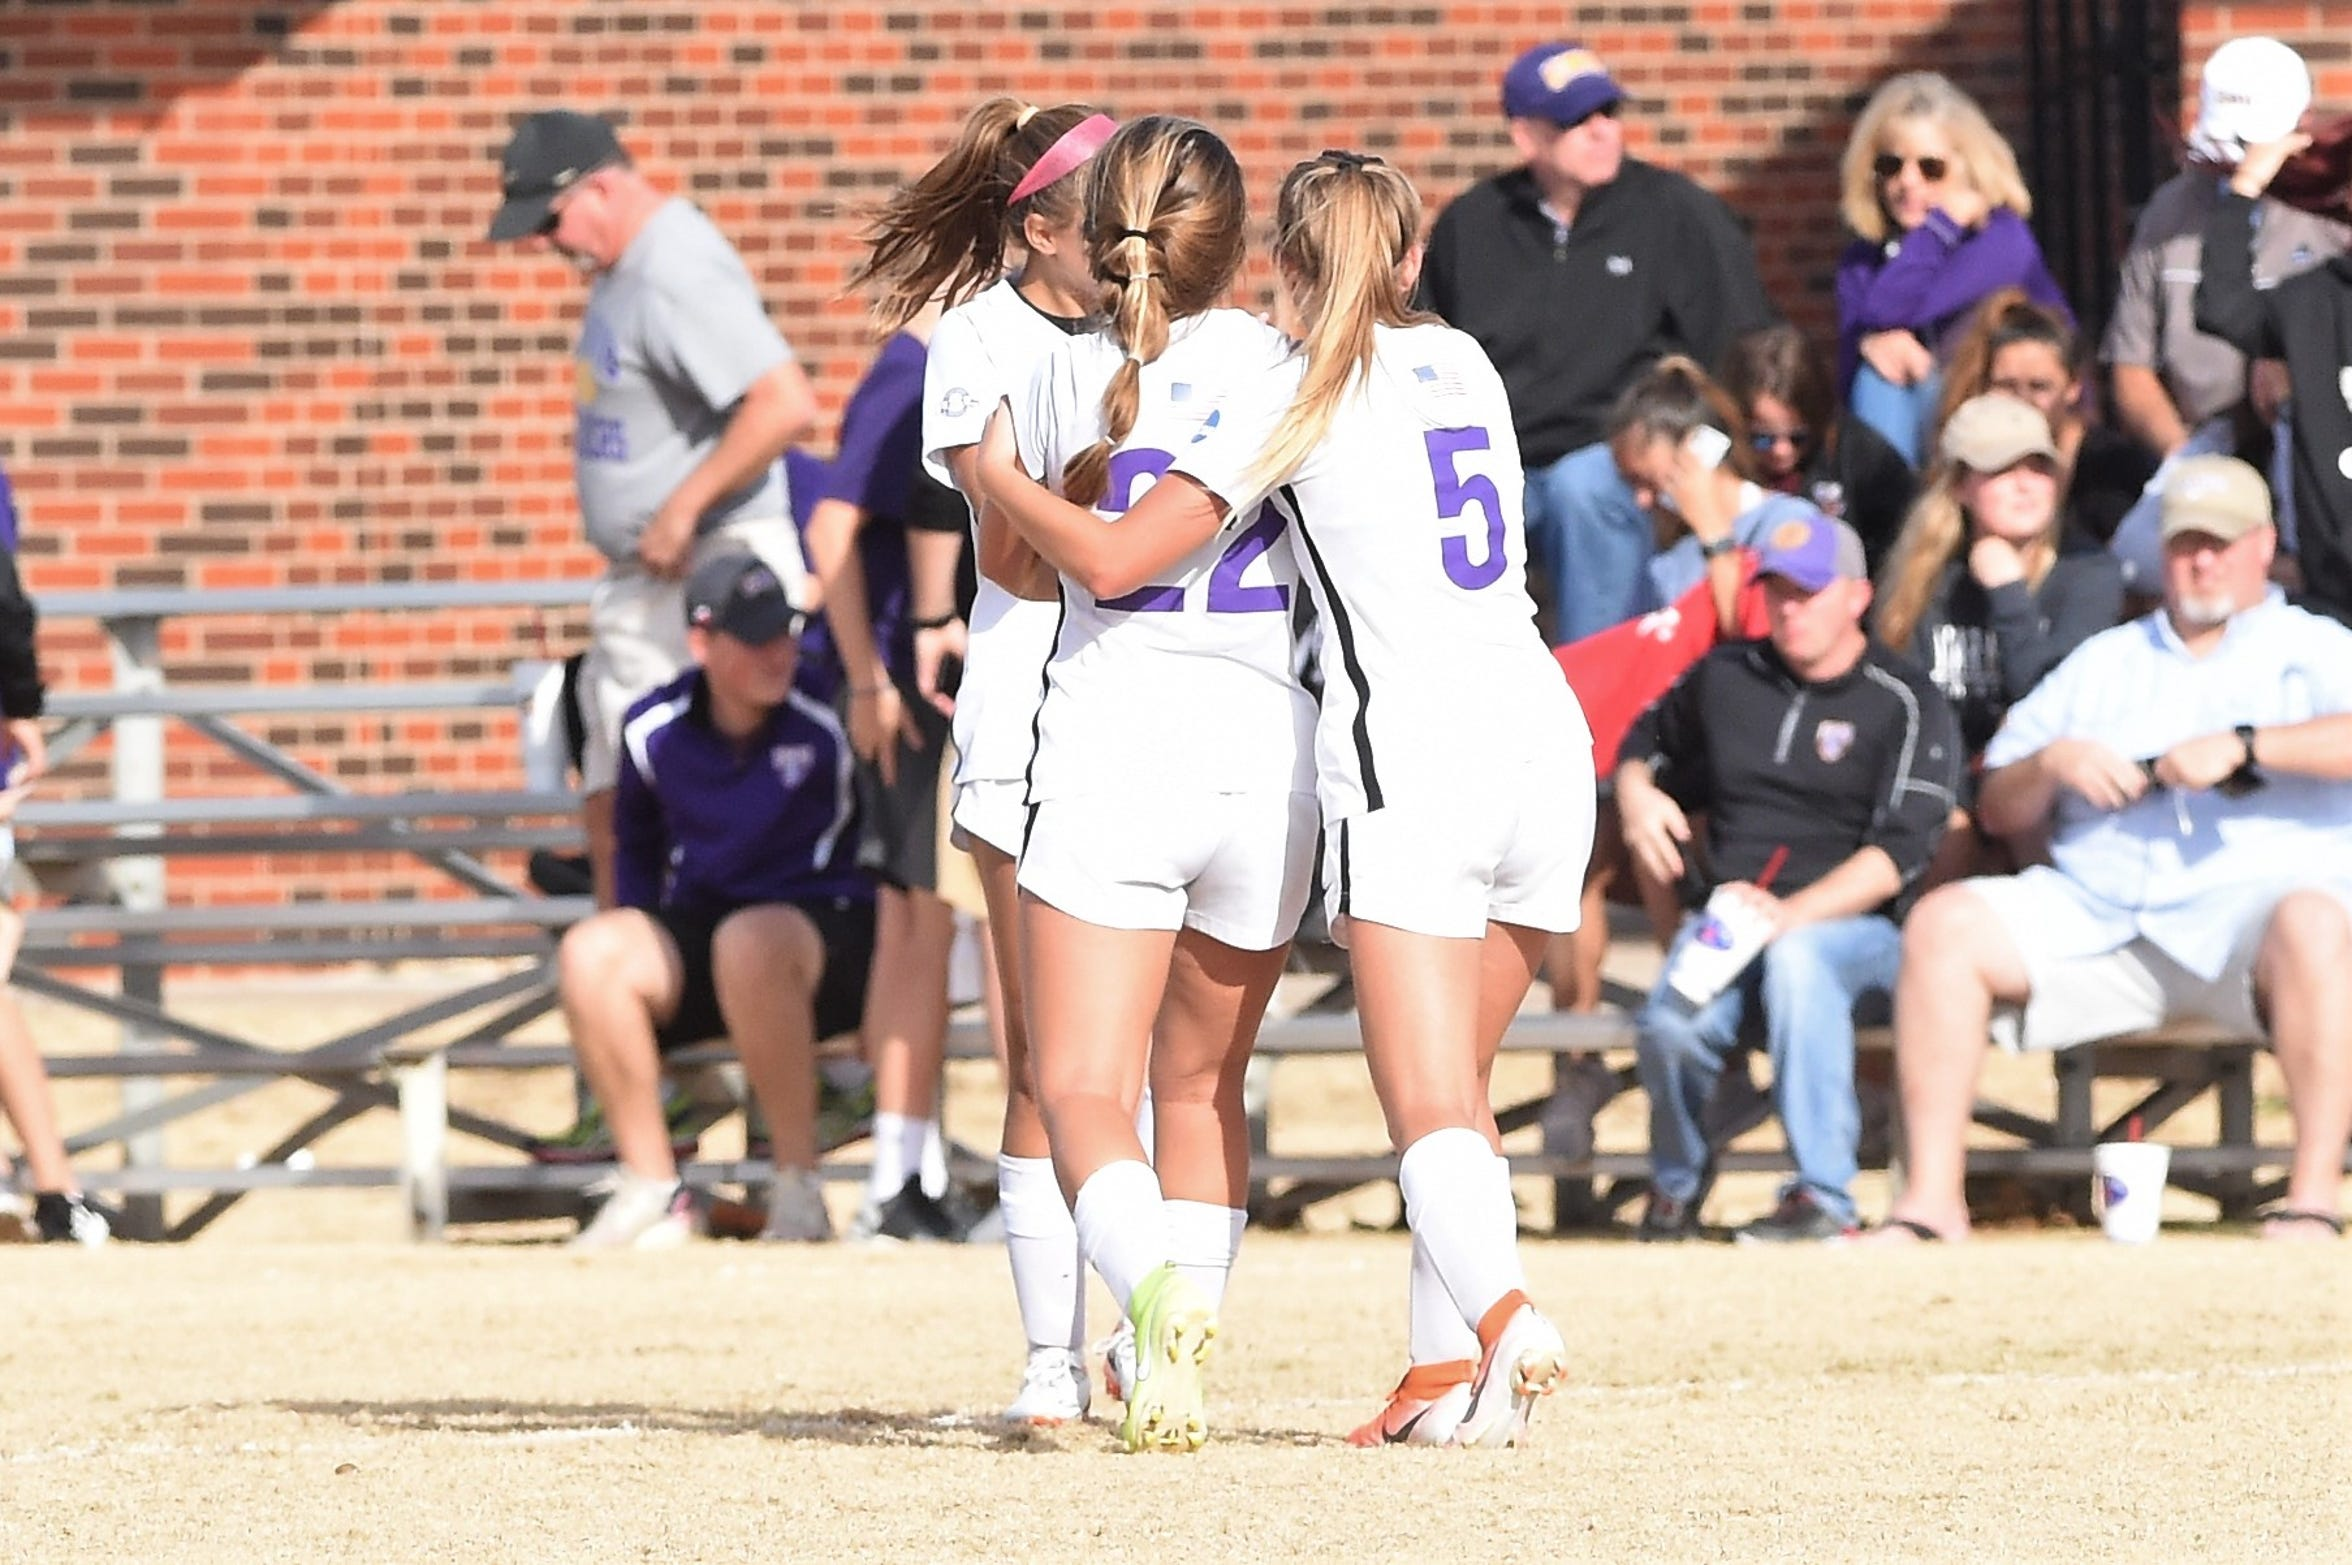 Hardin-Simmons seniors Kendell Groom (22) and Michaela Sabrsula (5) hug after beating Mary Hardin-Baylor in the ASC tournament championship at the HSU Soccer Complex on Sunday, Nov. 10, 2019. The Cowgirls won 2-0 for their 17th-straight tournament title.